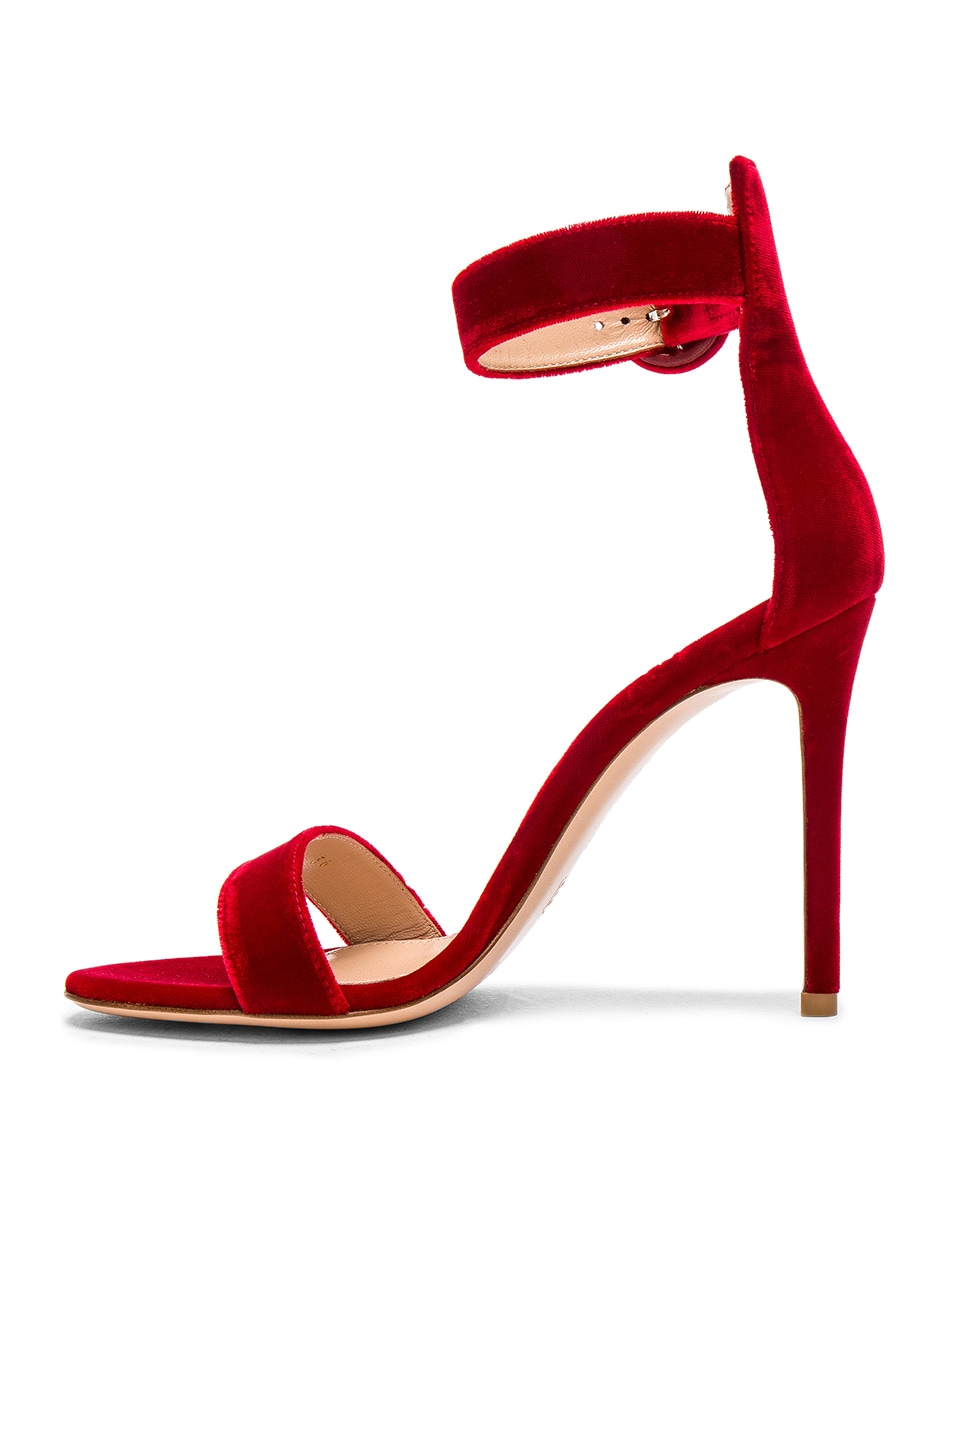 Image 5 of Gianvito Rossi Velvet Portofino Heels in Tabasco Red